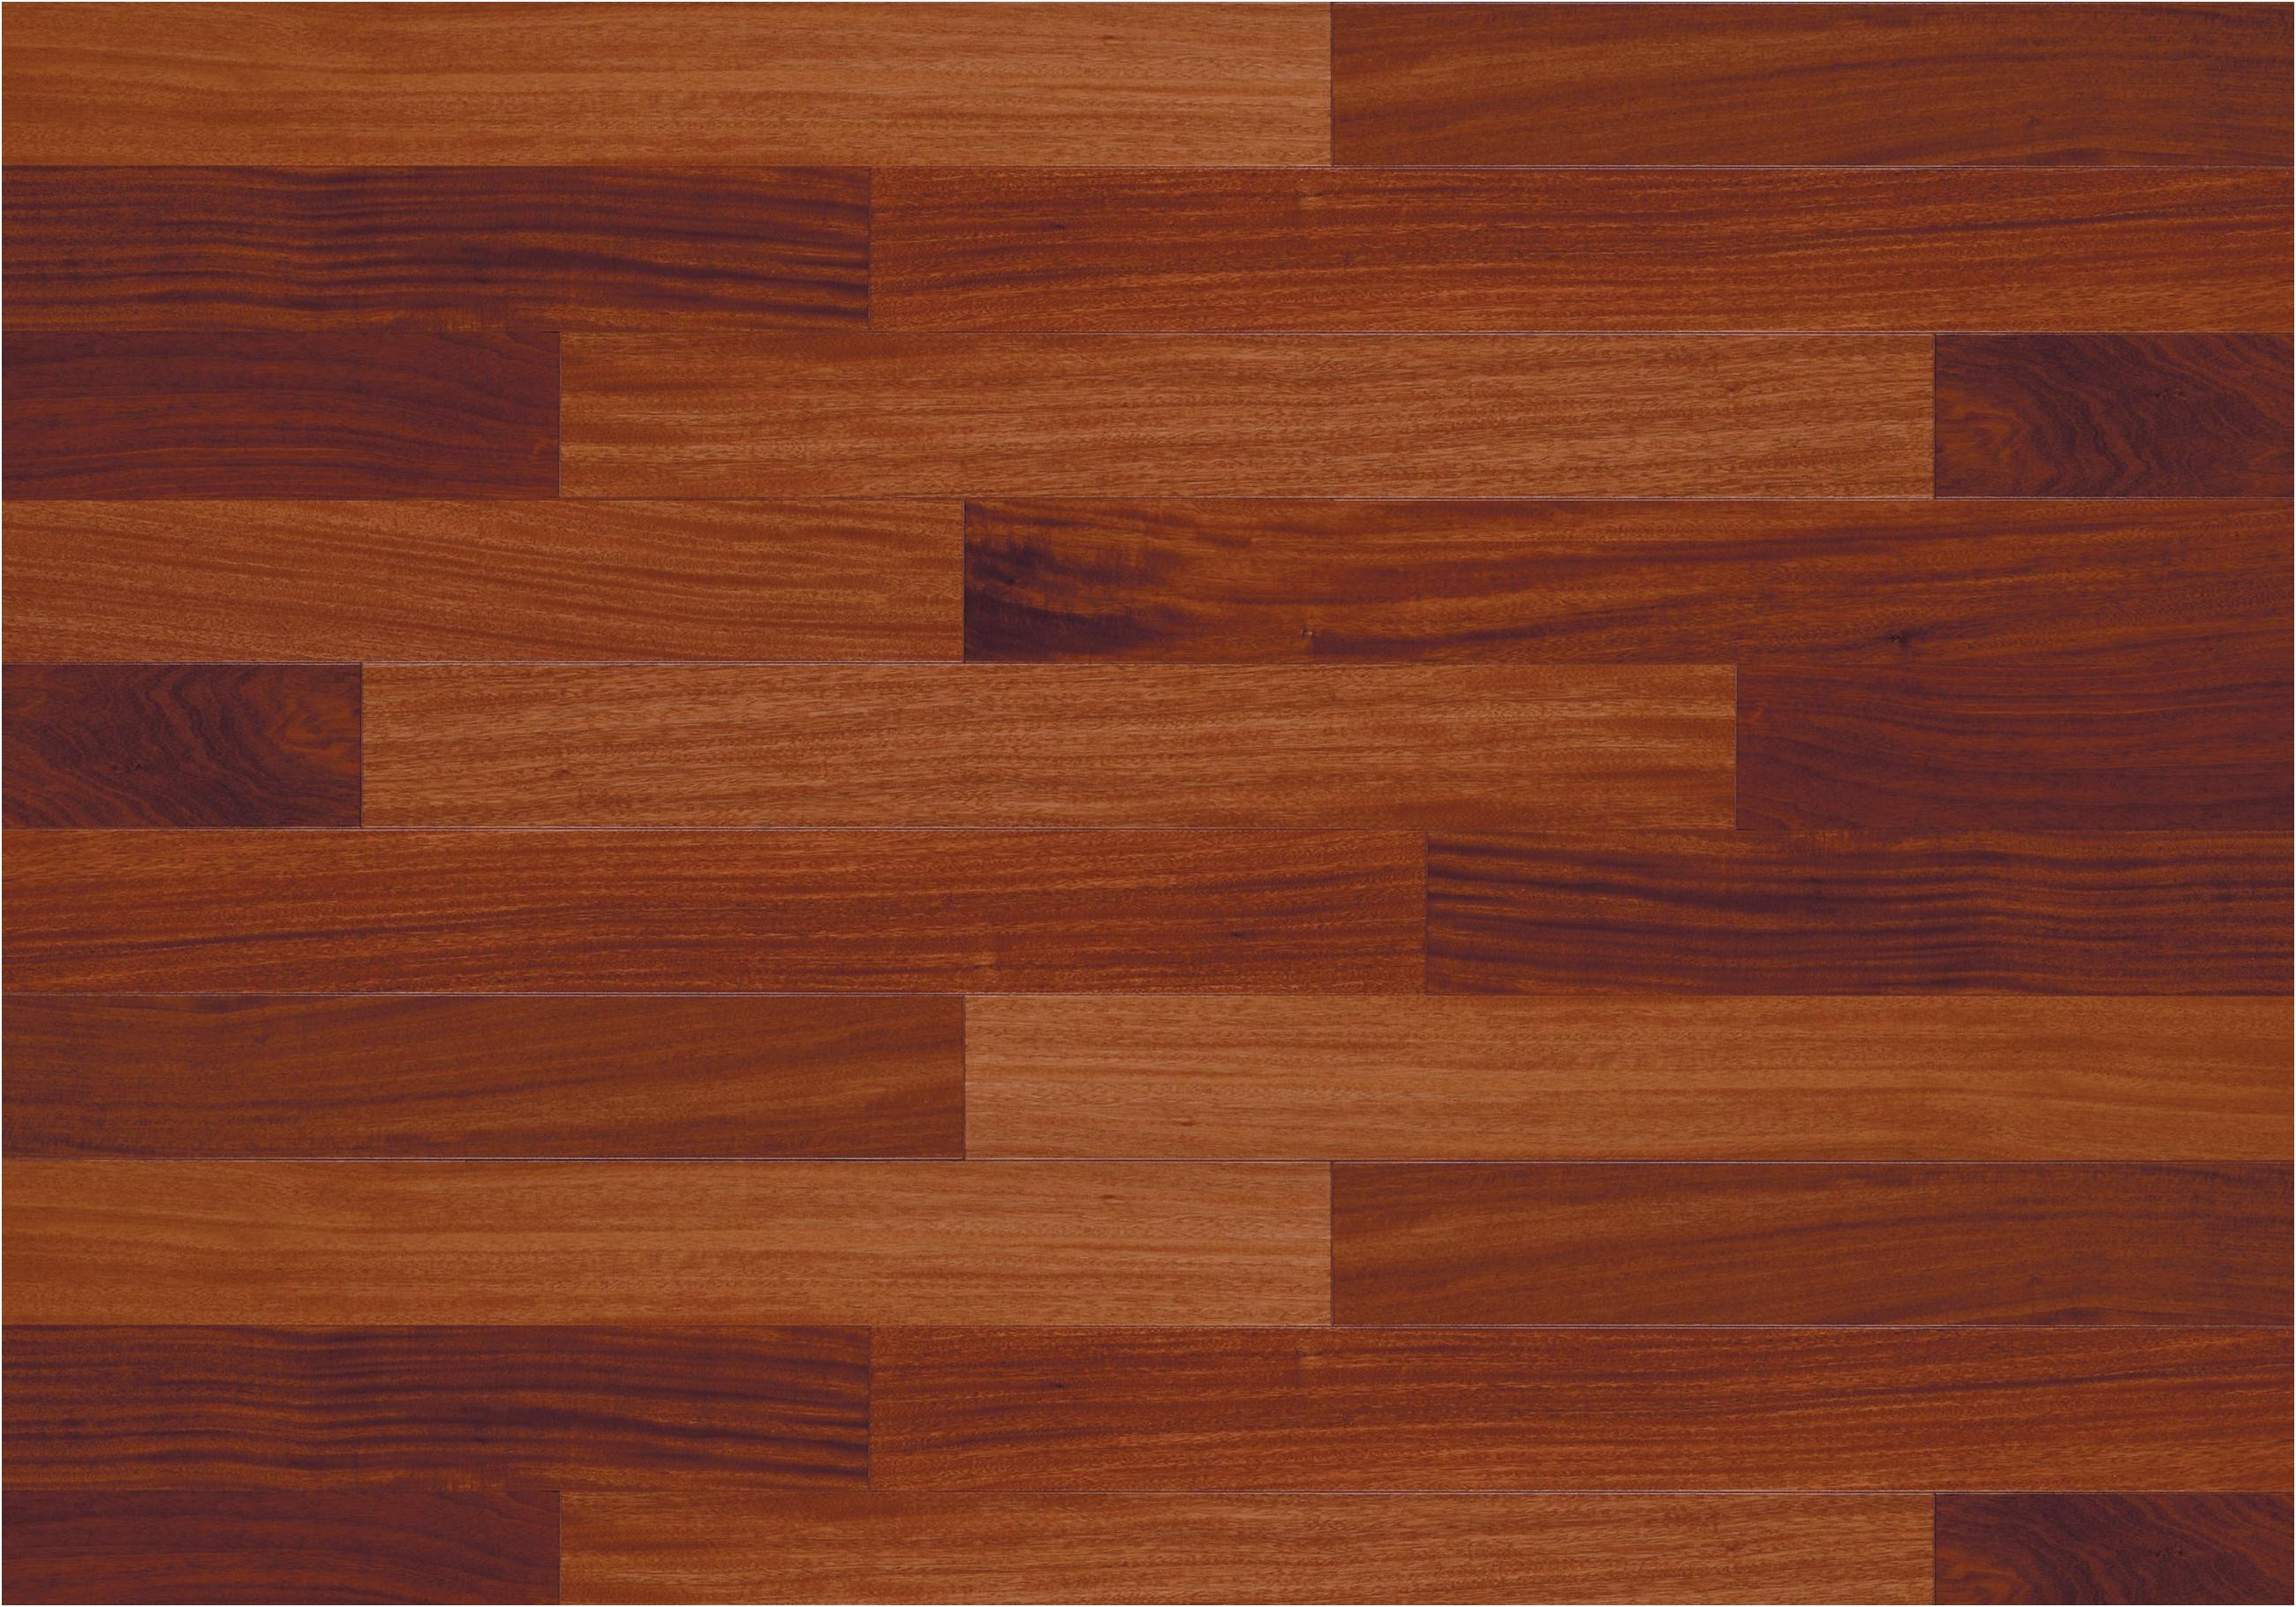 bamboo flooring vs hardwood pros and cons of pros and cons of bamboo flooring prefinished hardwood flooring pros throughout pros and cons of bamboo flooring prefinished hardwood flooring pros and cons galerie pros and cons